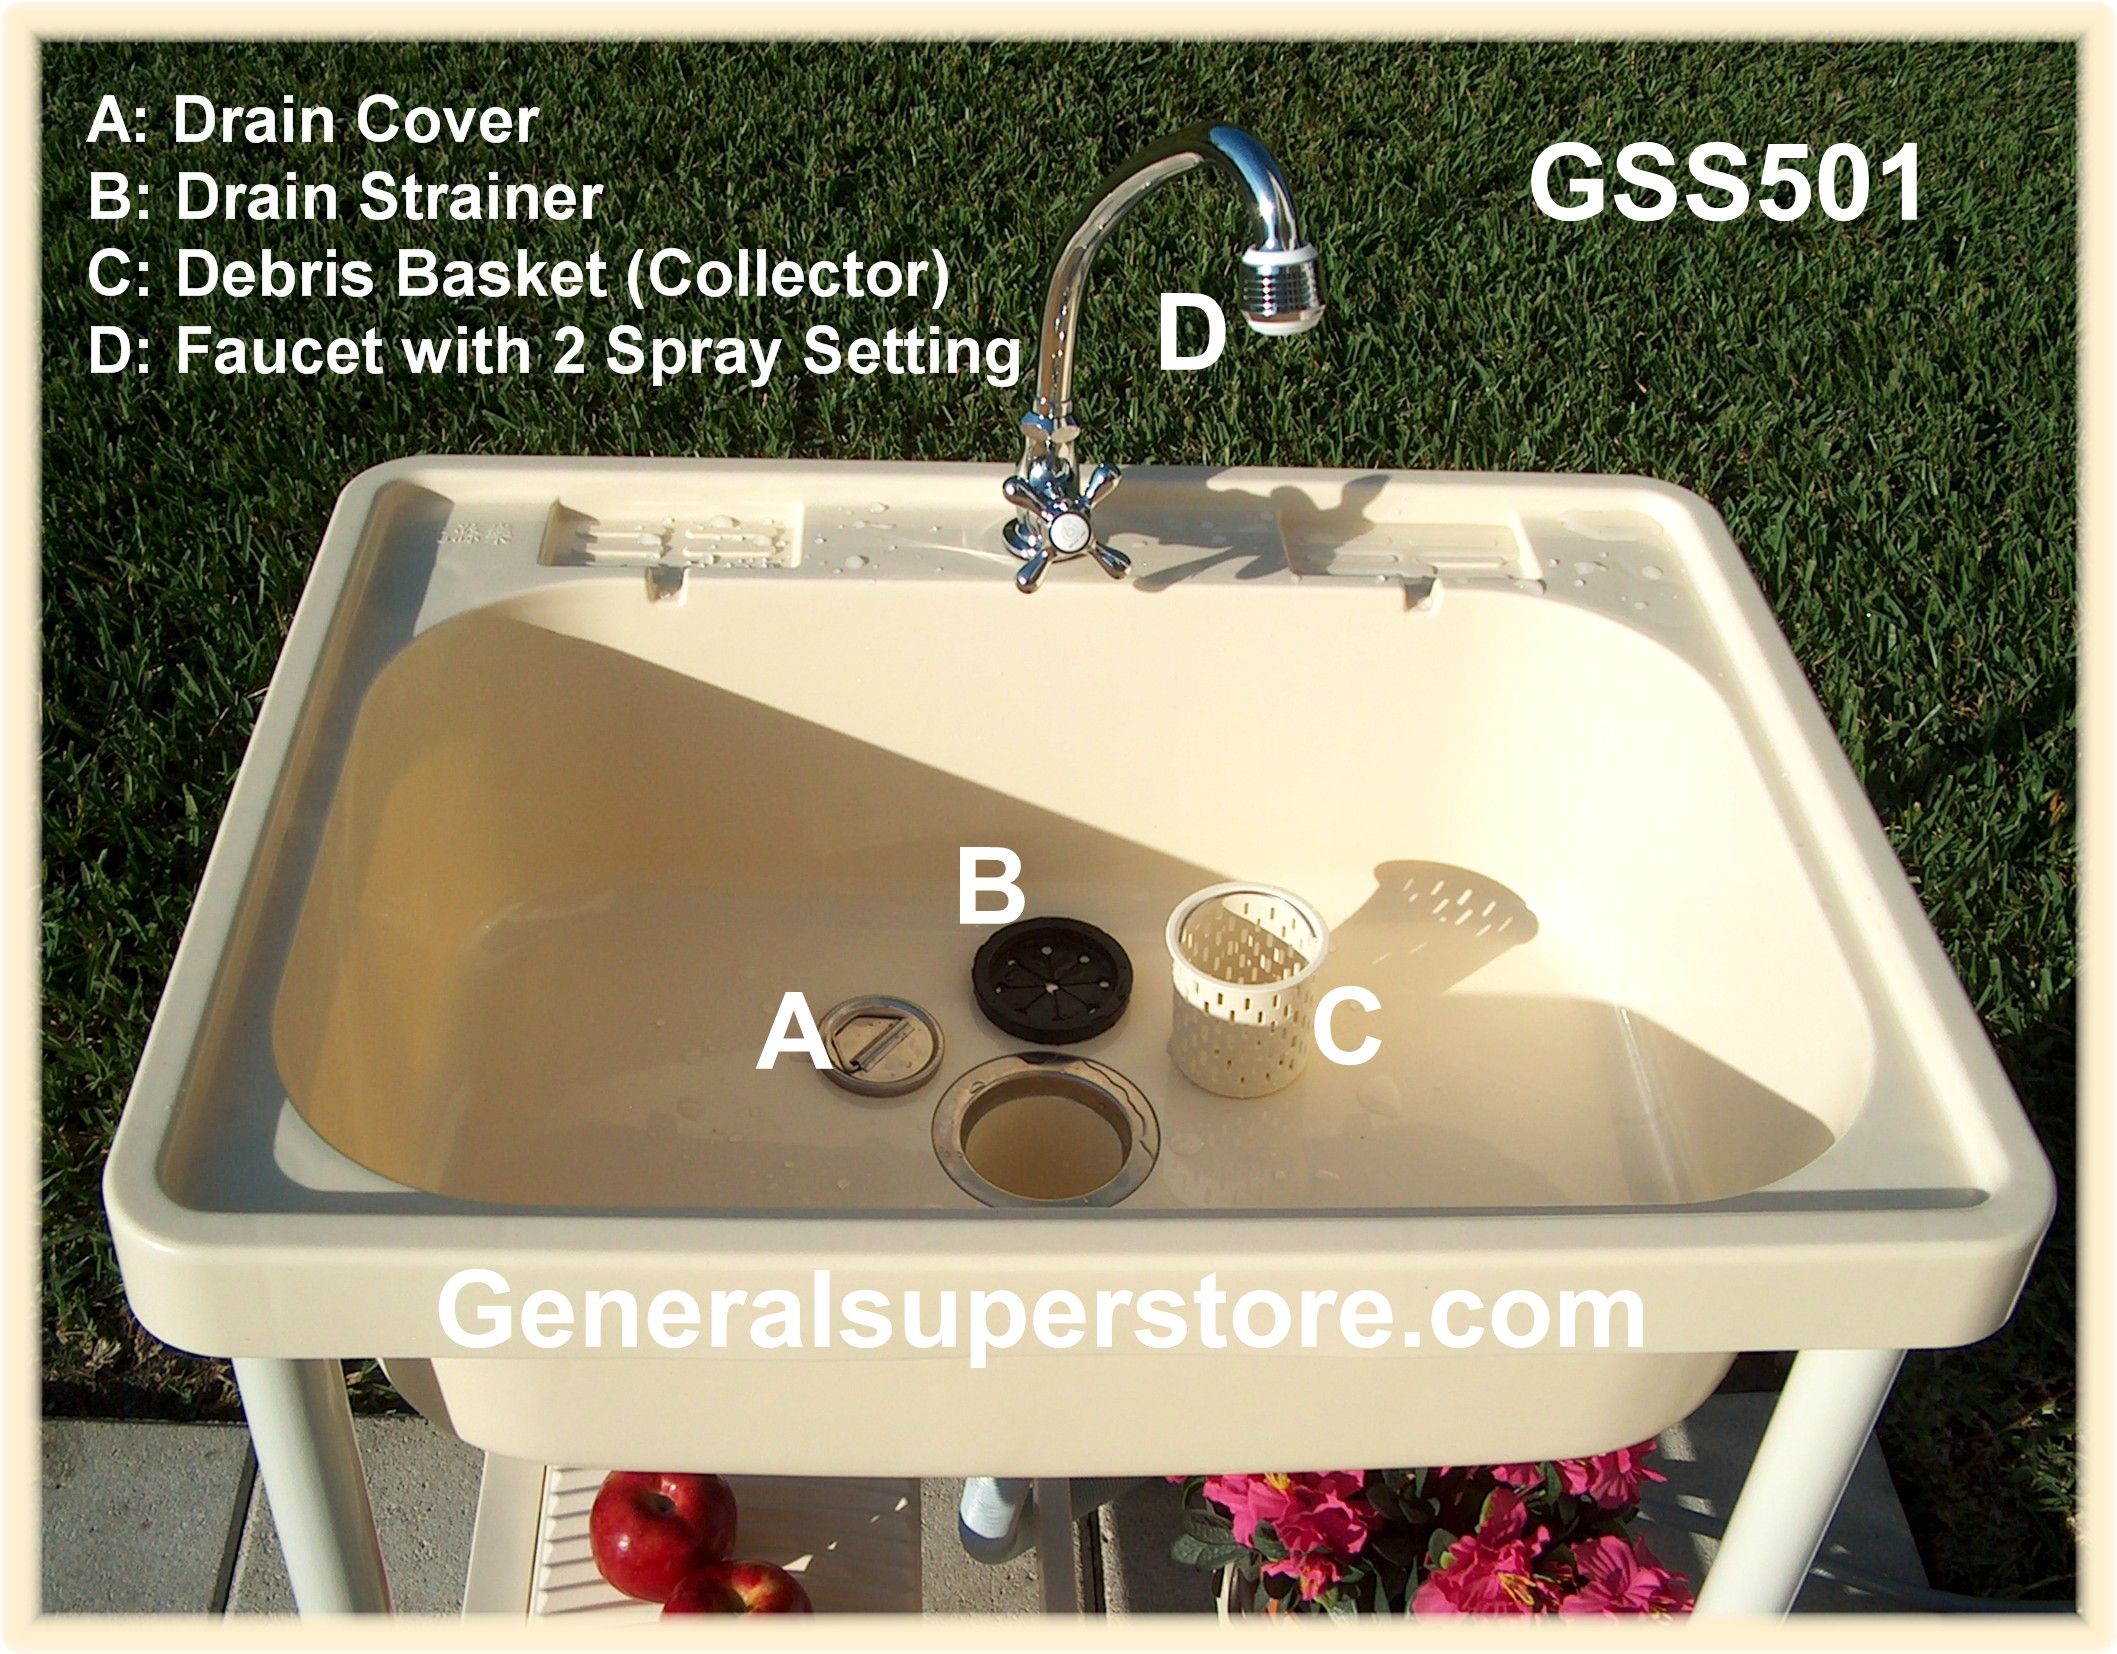 Camp Kitchen With Sink Bcf Camping Au Portable And Table Australia Diy Working Unit Uk Outdoor Deluxe Pvc Drain Tap Faucet Nz Starling Travel From General Gear Expocafeperu Com